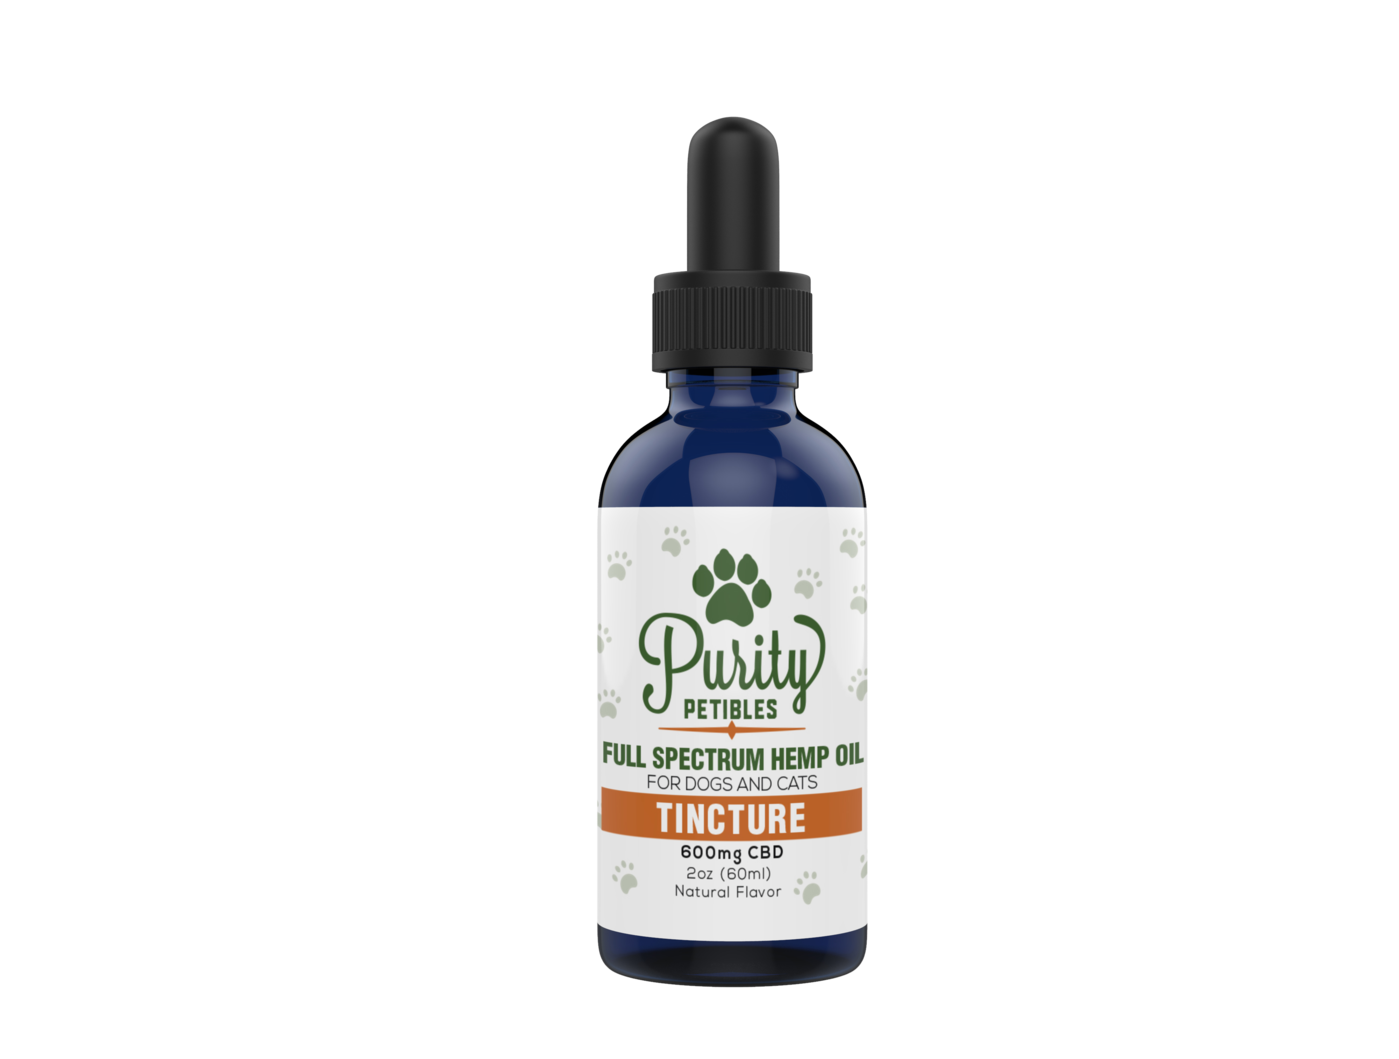 FULL SPECTRUM HEMP OIL PET CBD TINCTURE 600MG Purity Petibles